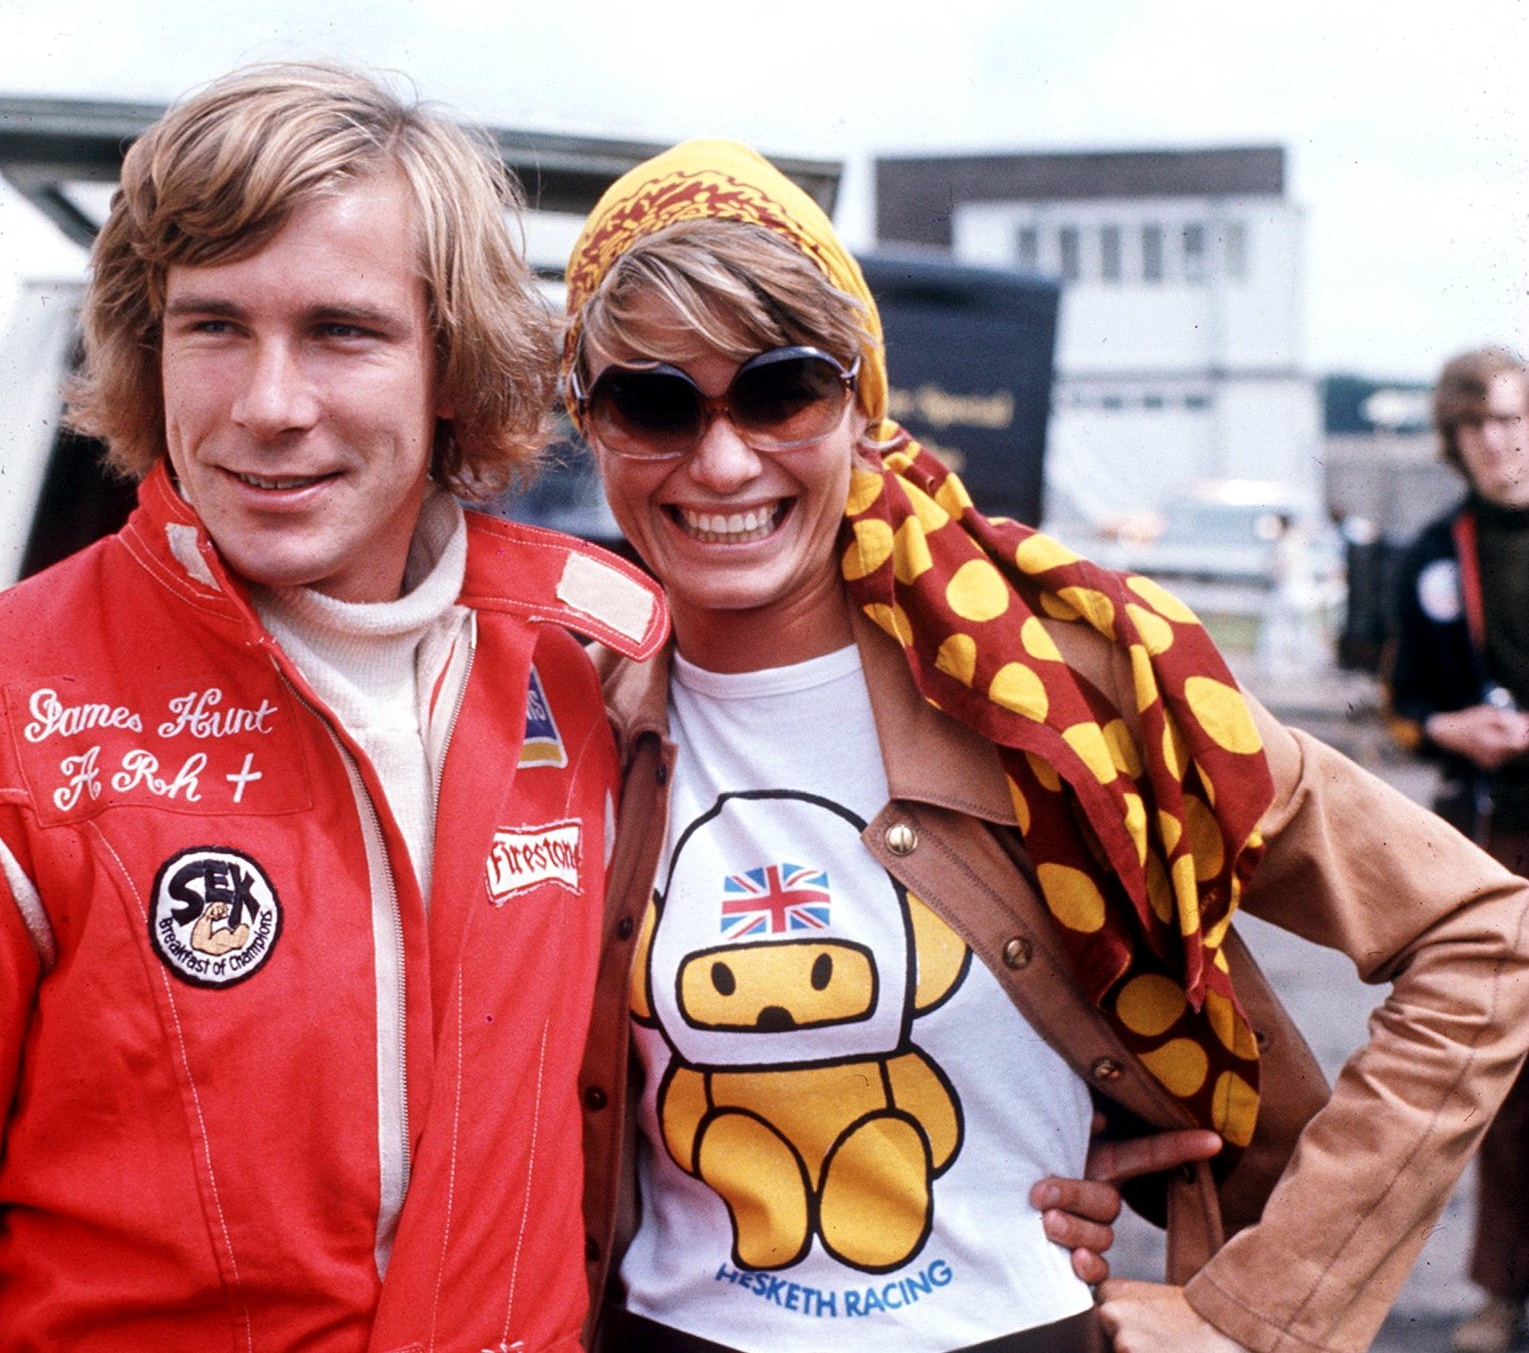 1974:  JAMES HUNT WITH HIS WIFE SUZI DURING THE BRITISH GRAND PRIX AT BRANDS HATCH. Mandatory Credit: Allsport UK/ALLSPORT